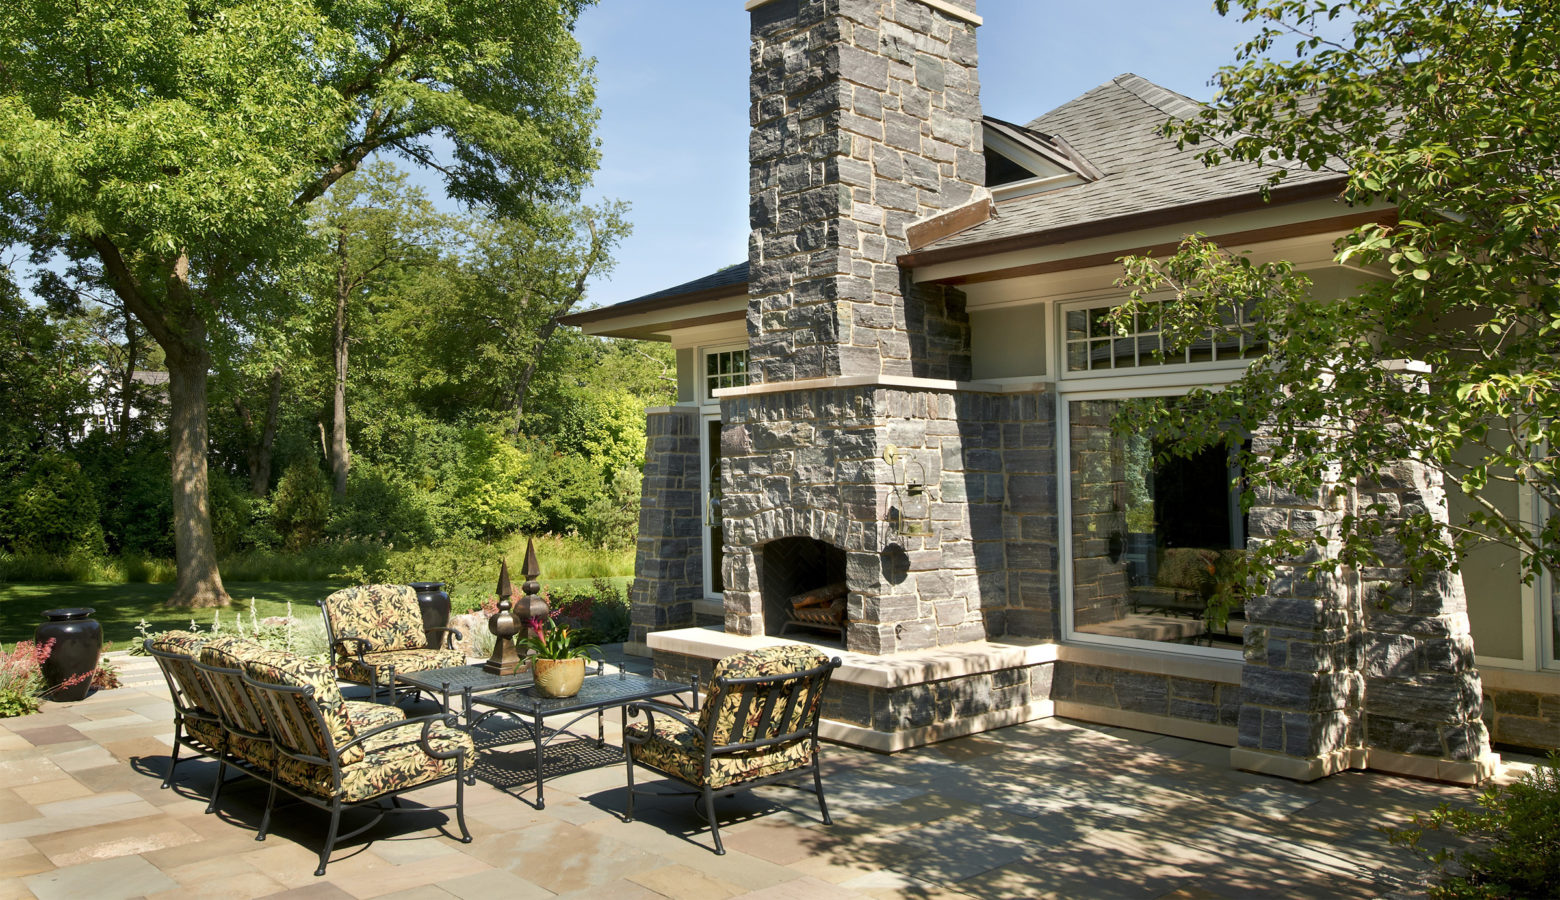 Outdoor Living Space Design inspiring outdoor living spaces: design ideas to turn your